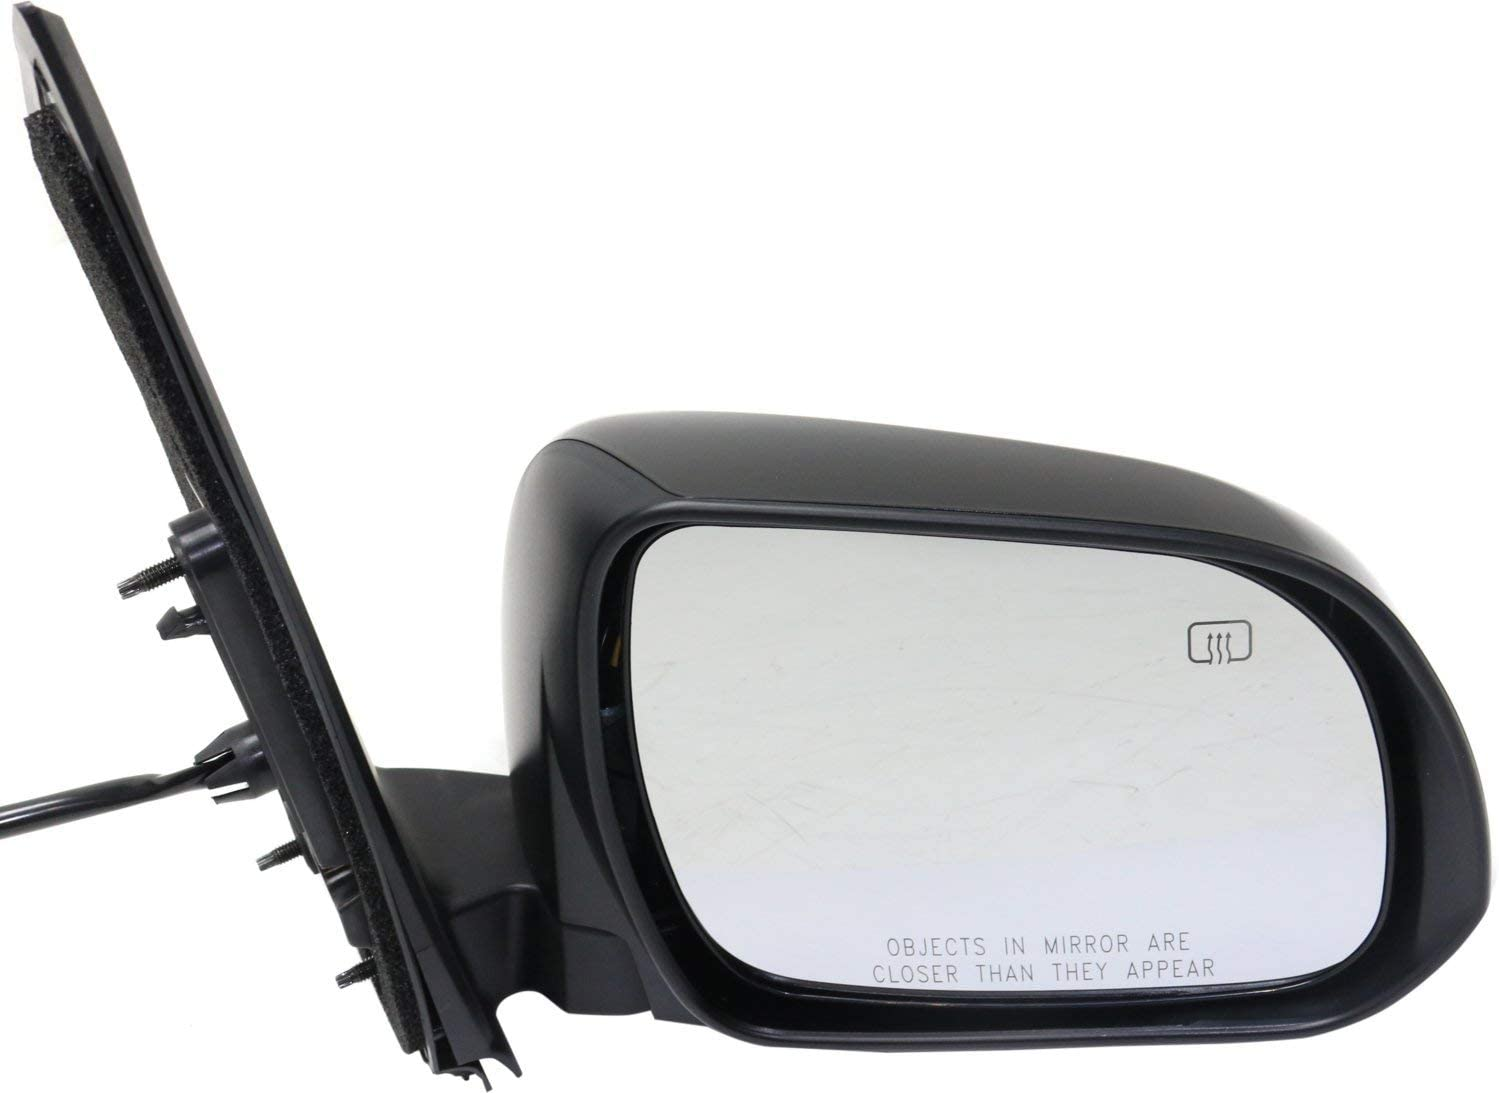 Kool Vue Mirror Compatible with Passenge Sienna Super sale period limited Toyota Safety and trust 2011-2018